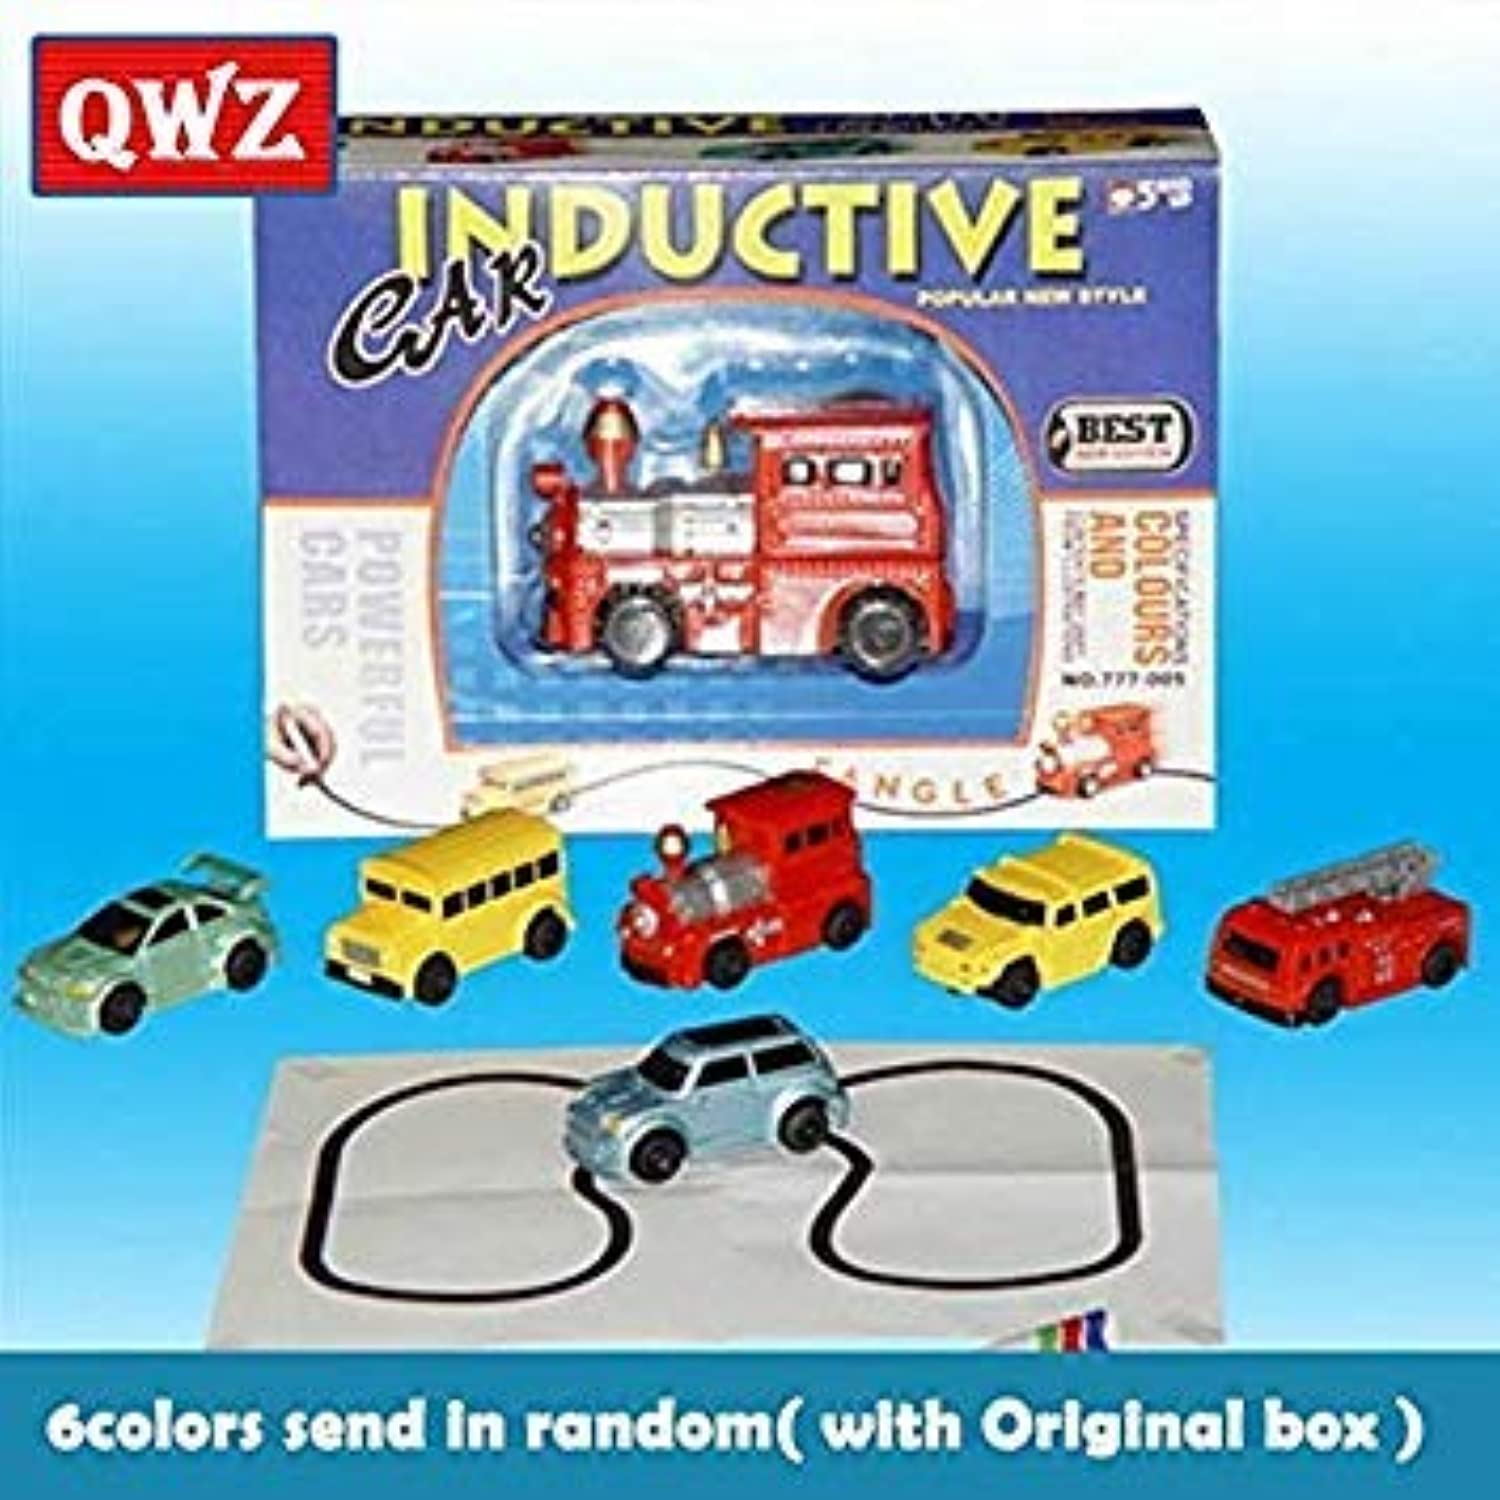 QWZ Magic Pen Inductive Car Truck Tank Follow Any Drawn Black Line Track Mini Toy Engineering Vehicles Educational Toy for Kids carY